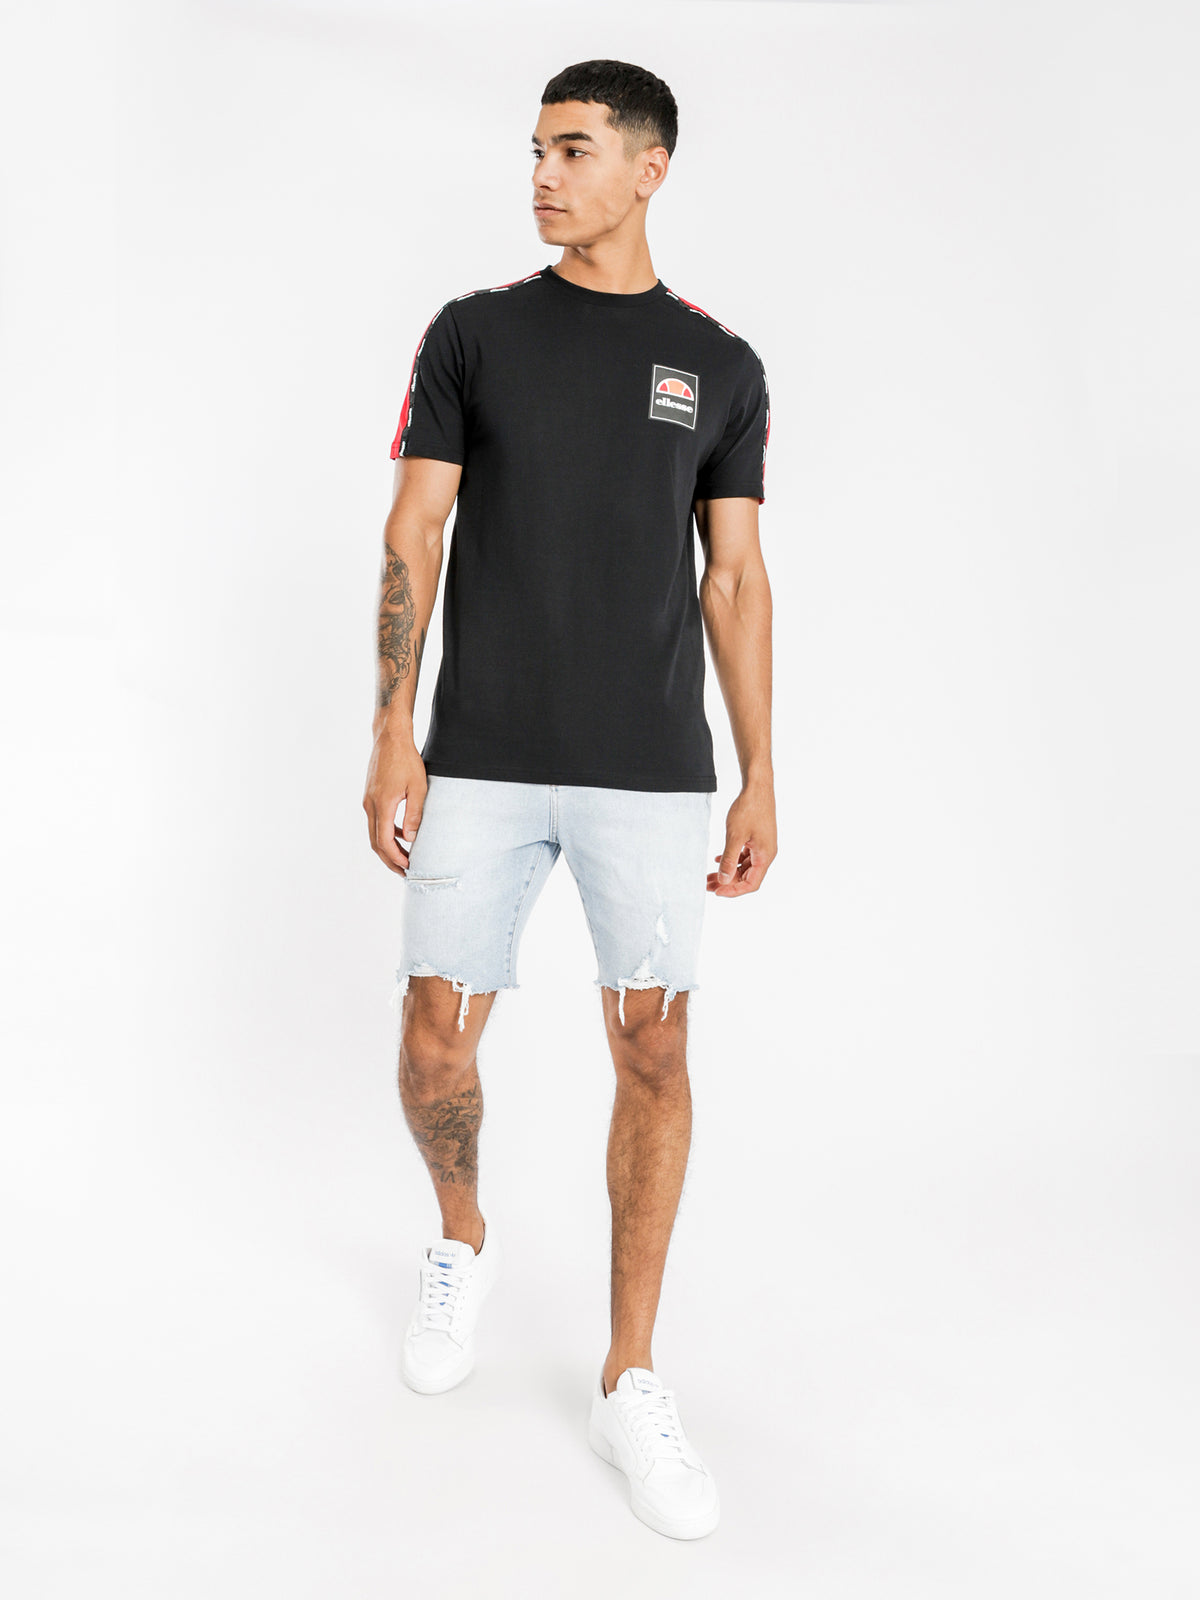 Serchio T-Shirt in Black